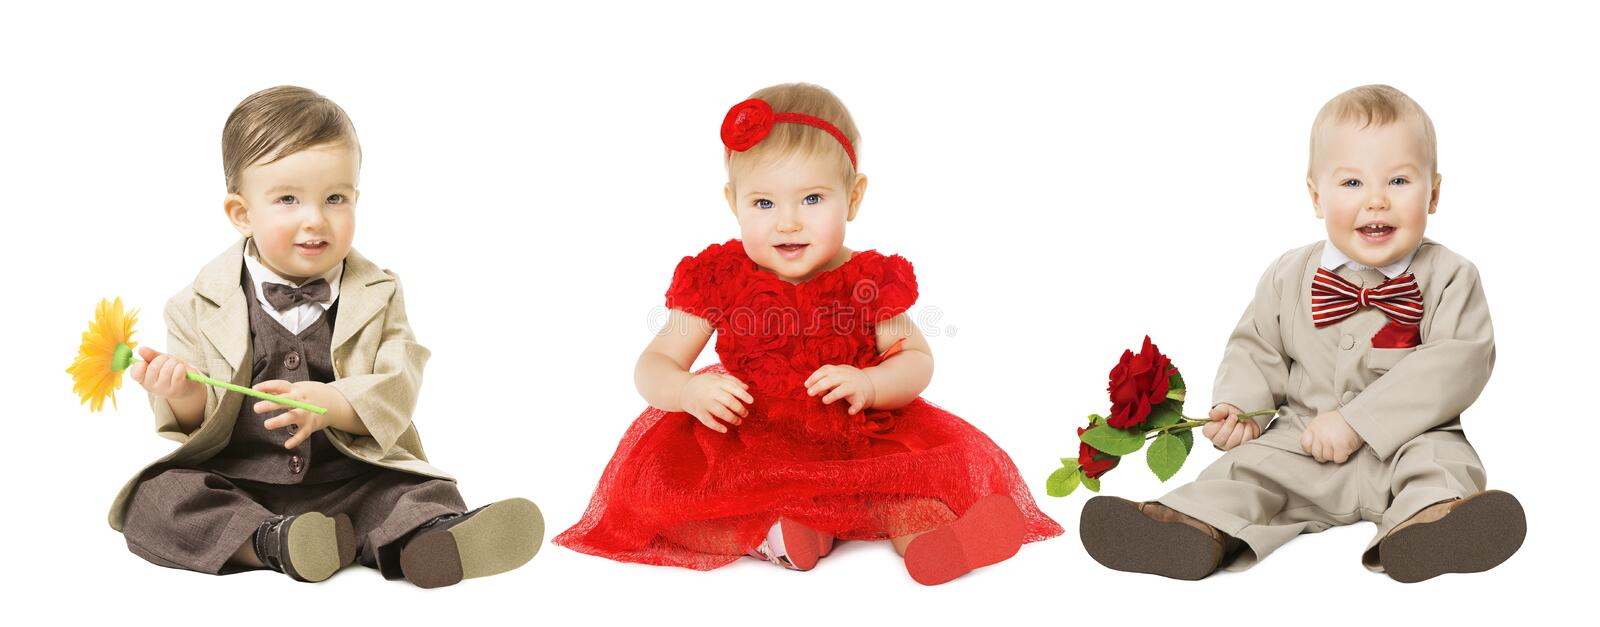 Babies Kids Well Dressed, Elegant Children with Flower, Fashion royalty free stock photo